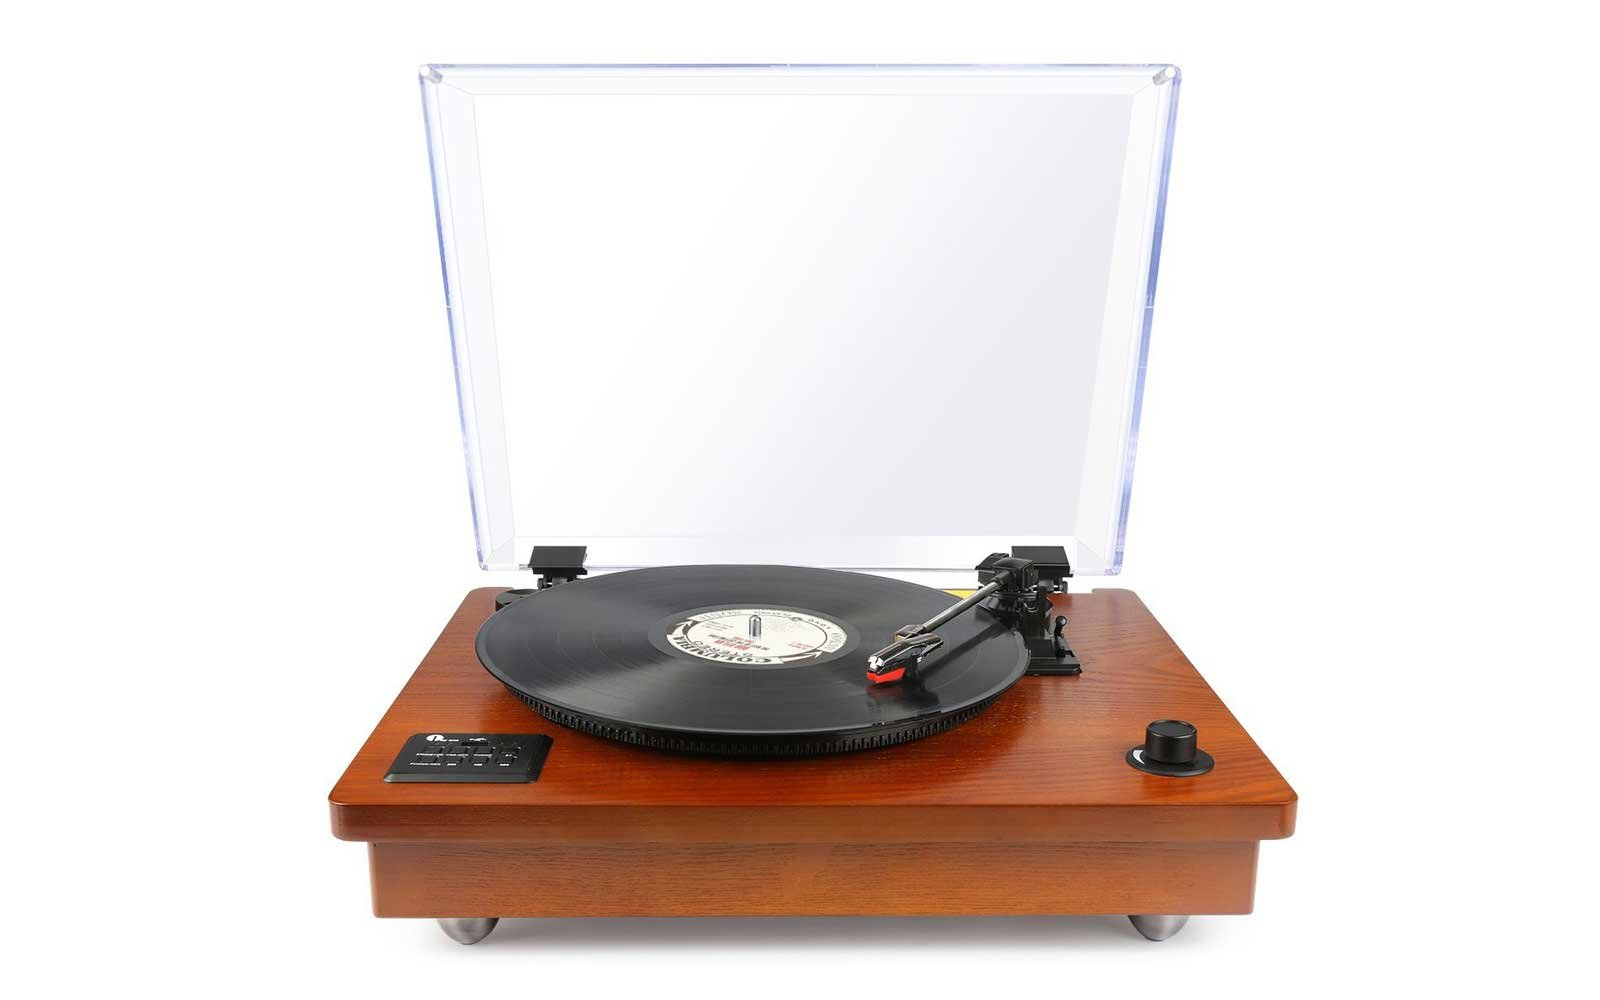 Turntable With Built-in Stereo Speaker, Vintage Style Record Player